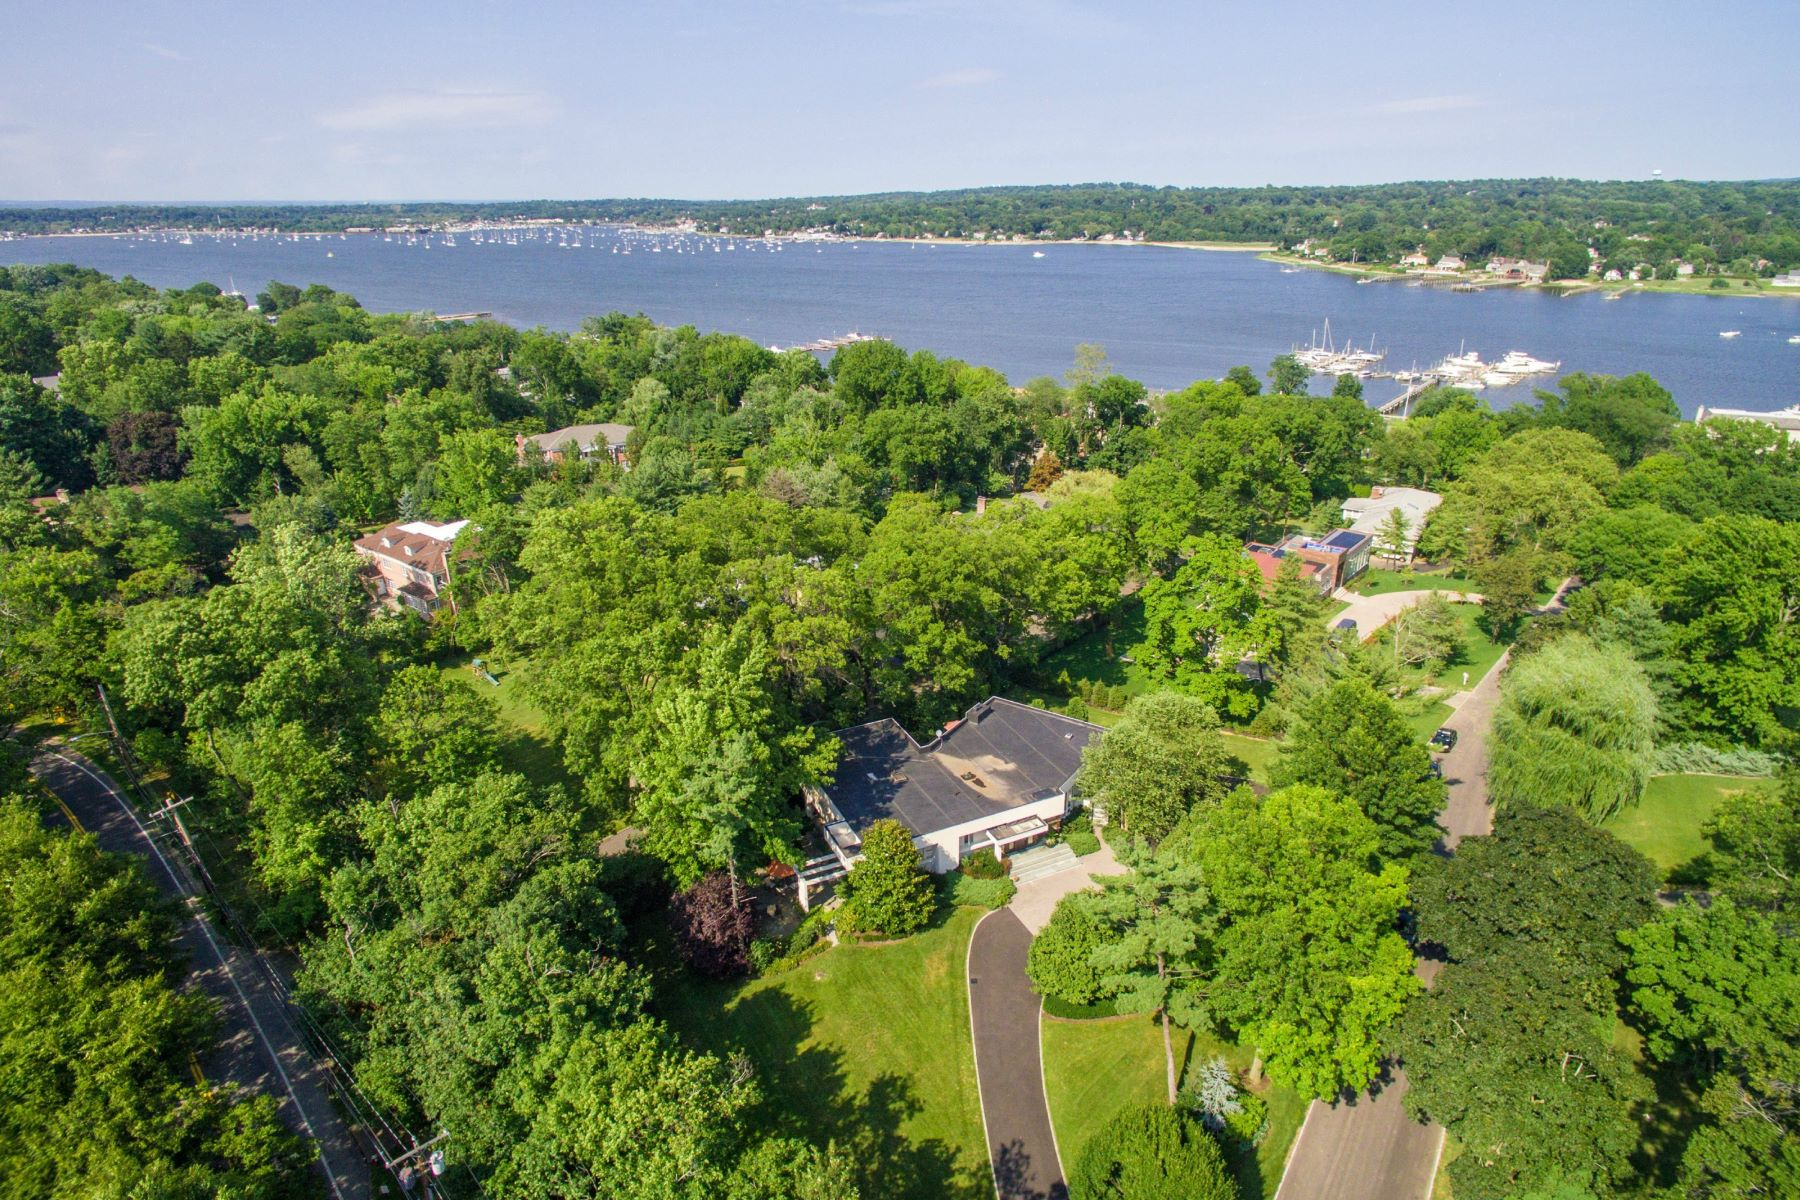 Single Family Homes for Active at Great Neck 2 Shelter Bay Drive Great Neck, New York 11024 United States